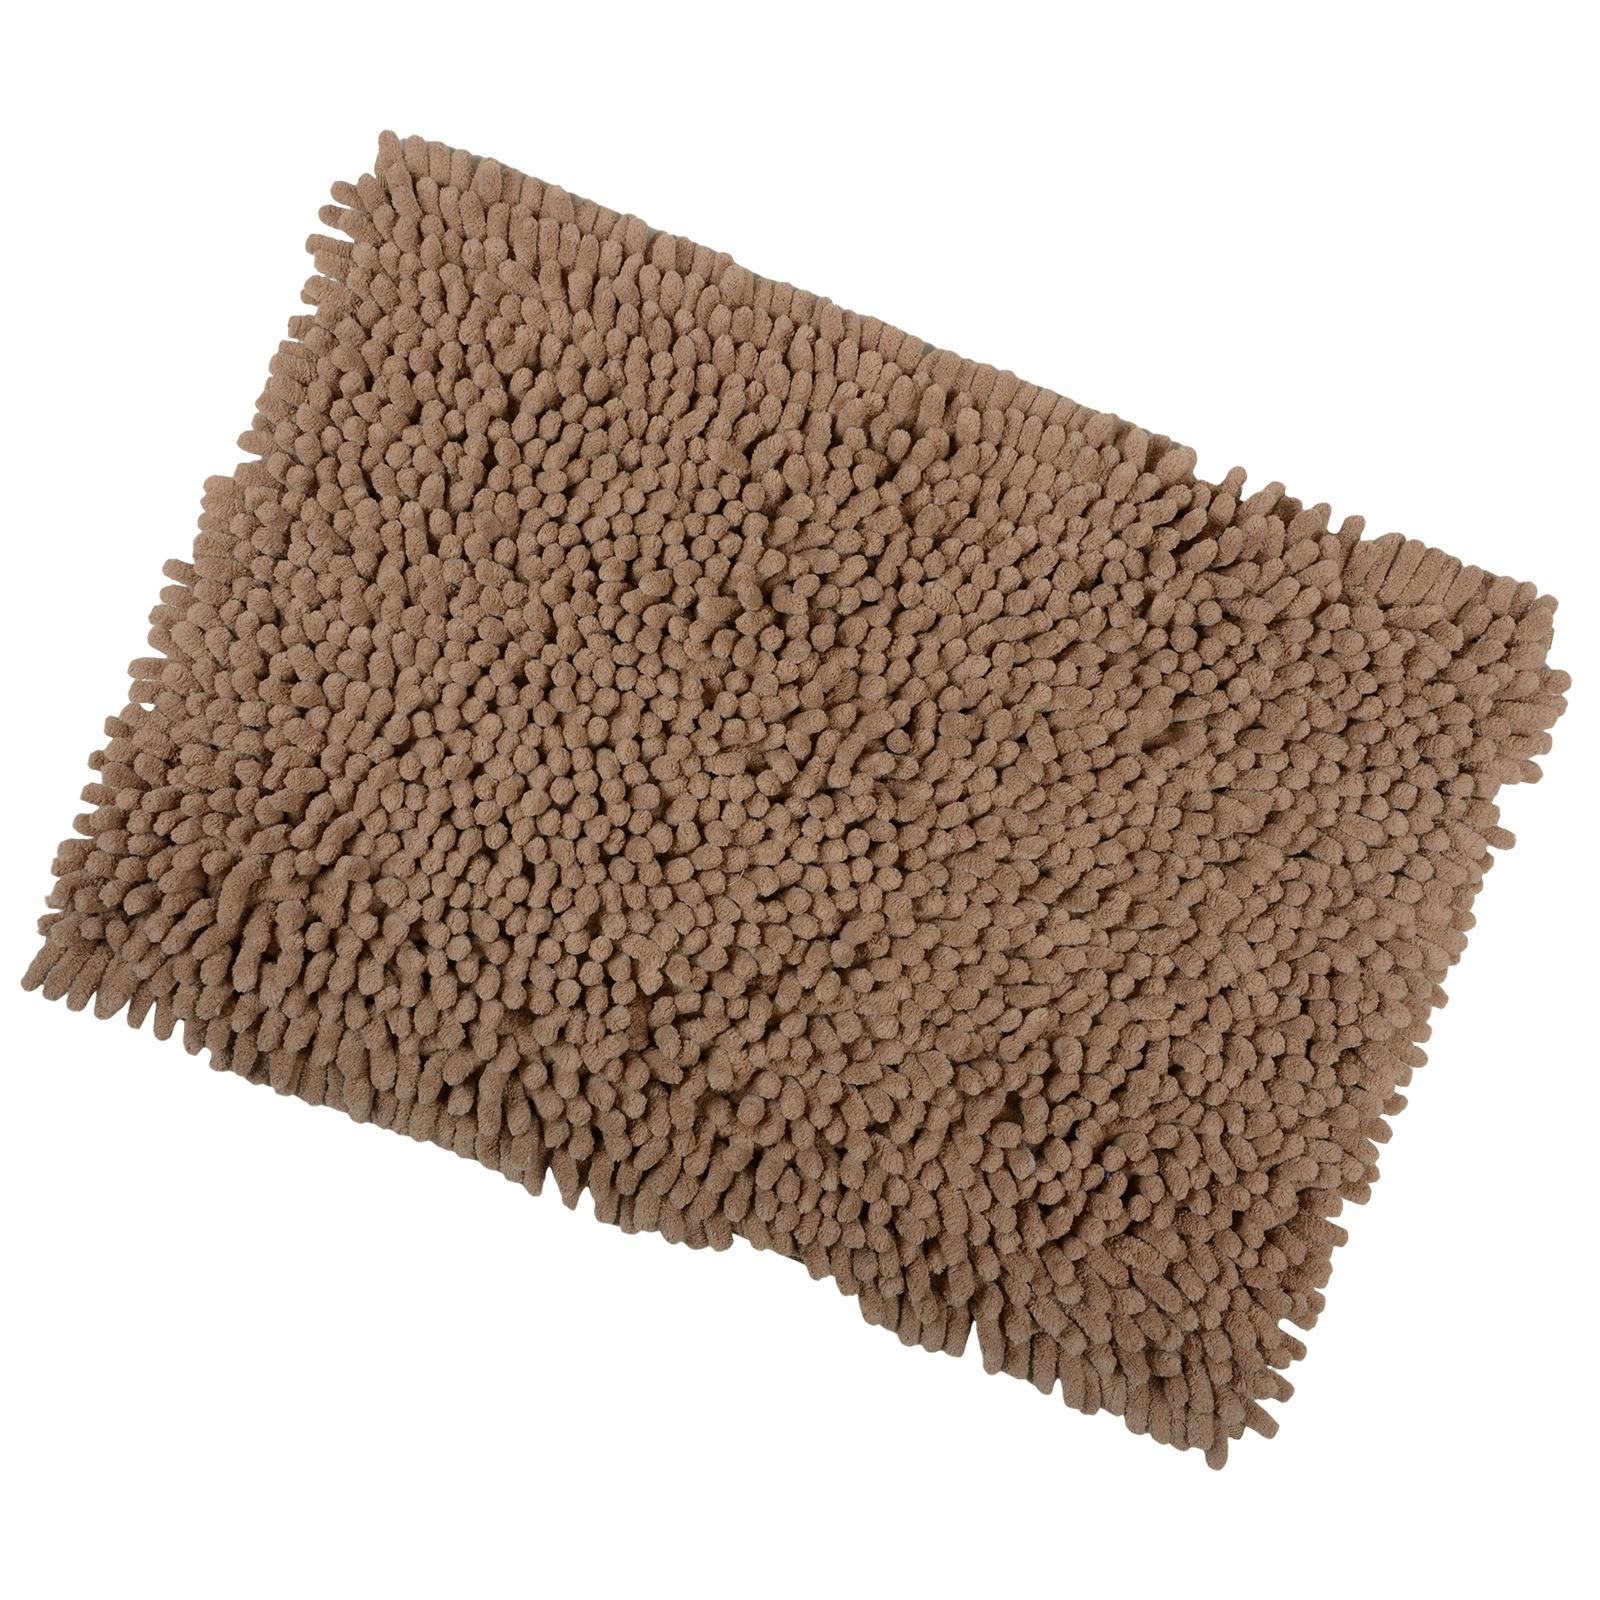 Non Slip Bathroom Mats Shaggy Microfibre Bathroom Shower Bath Mat Rug Non Slip